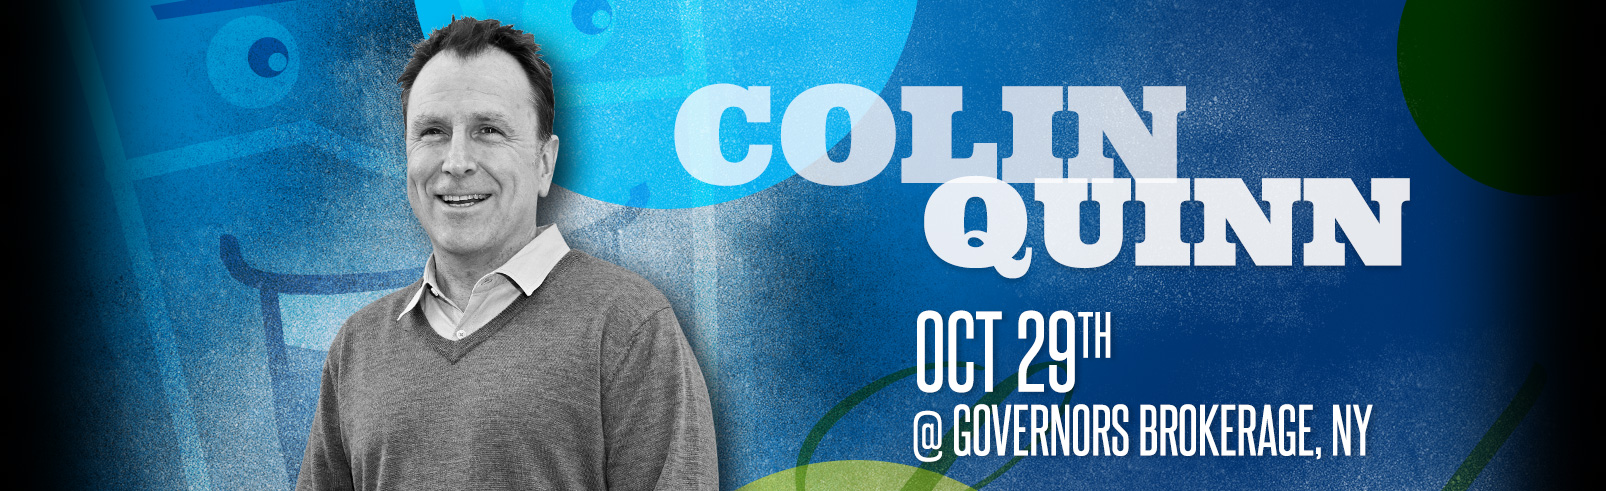 Colin Quinn @ Governors Brokerage